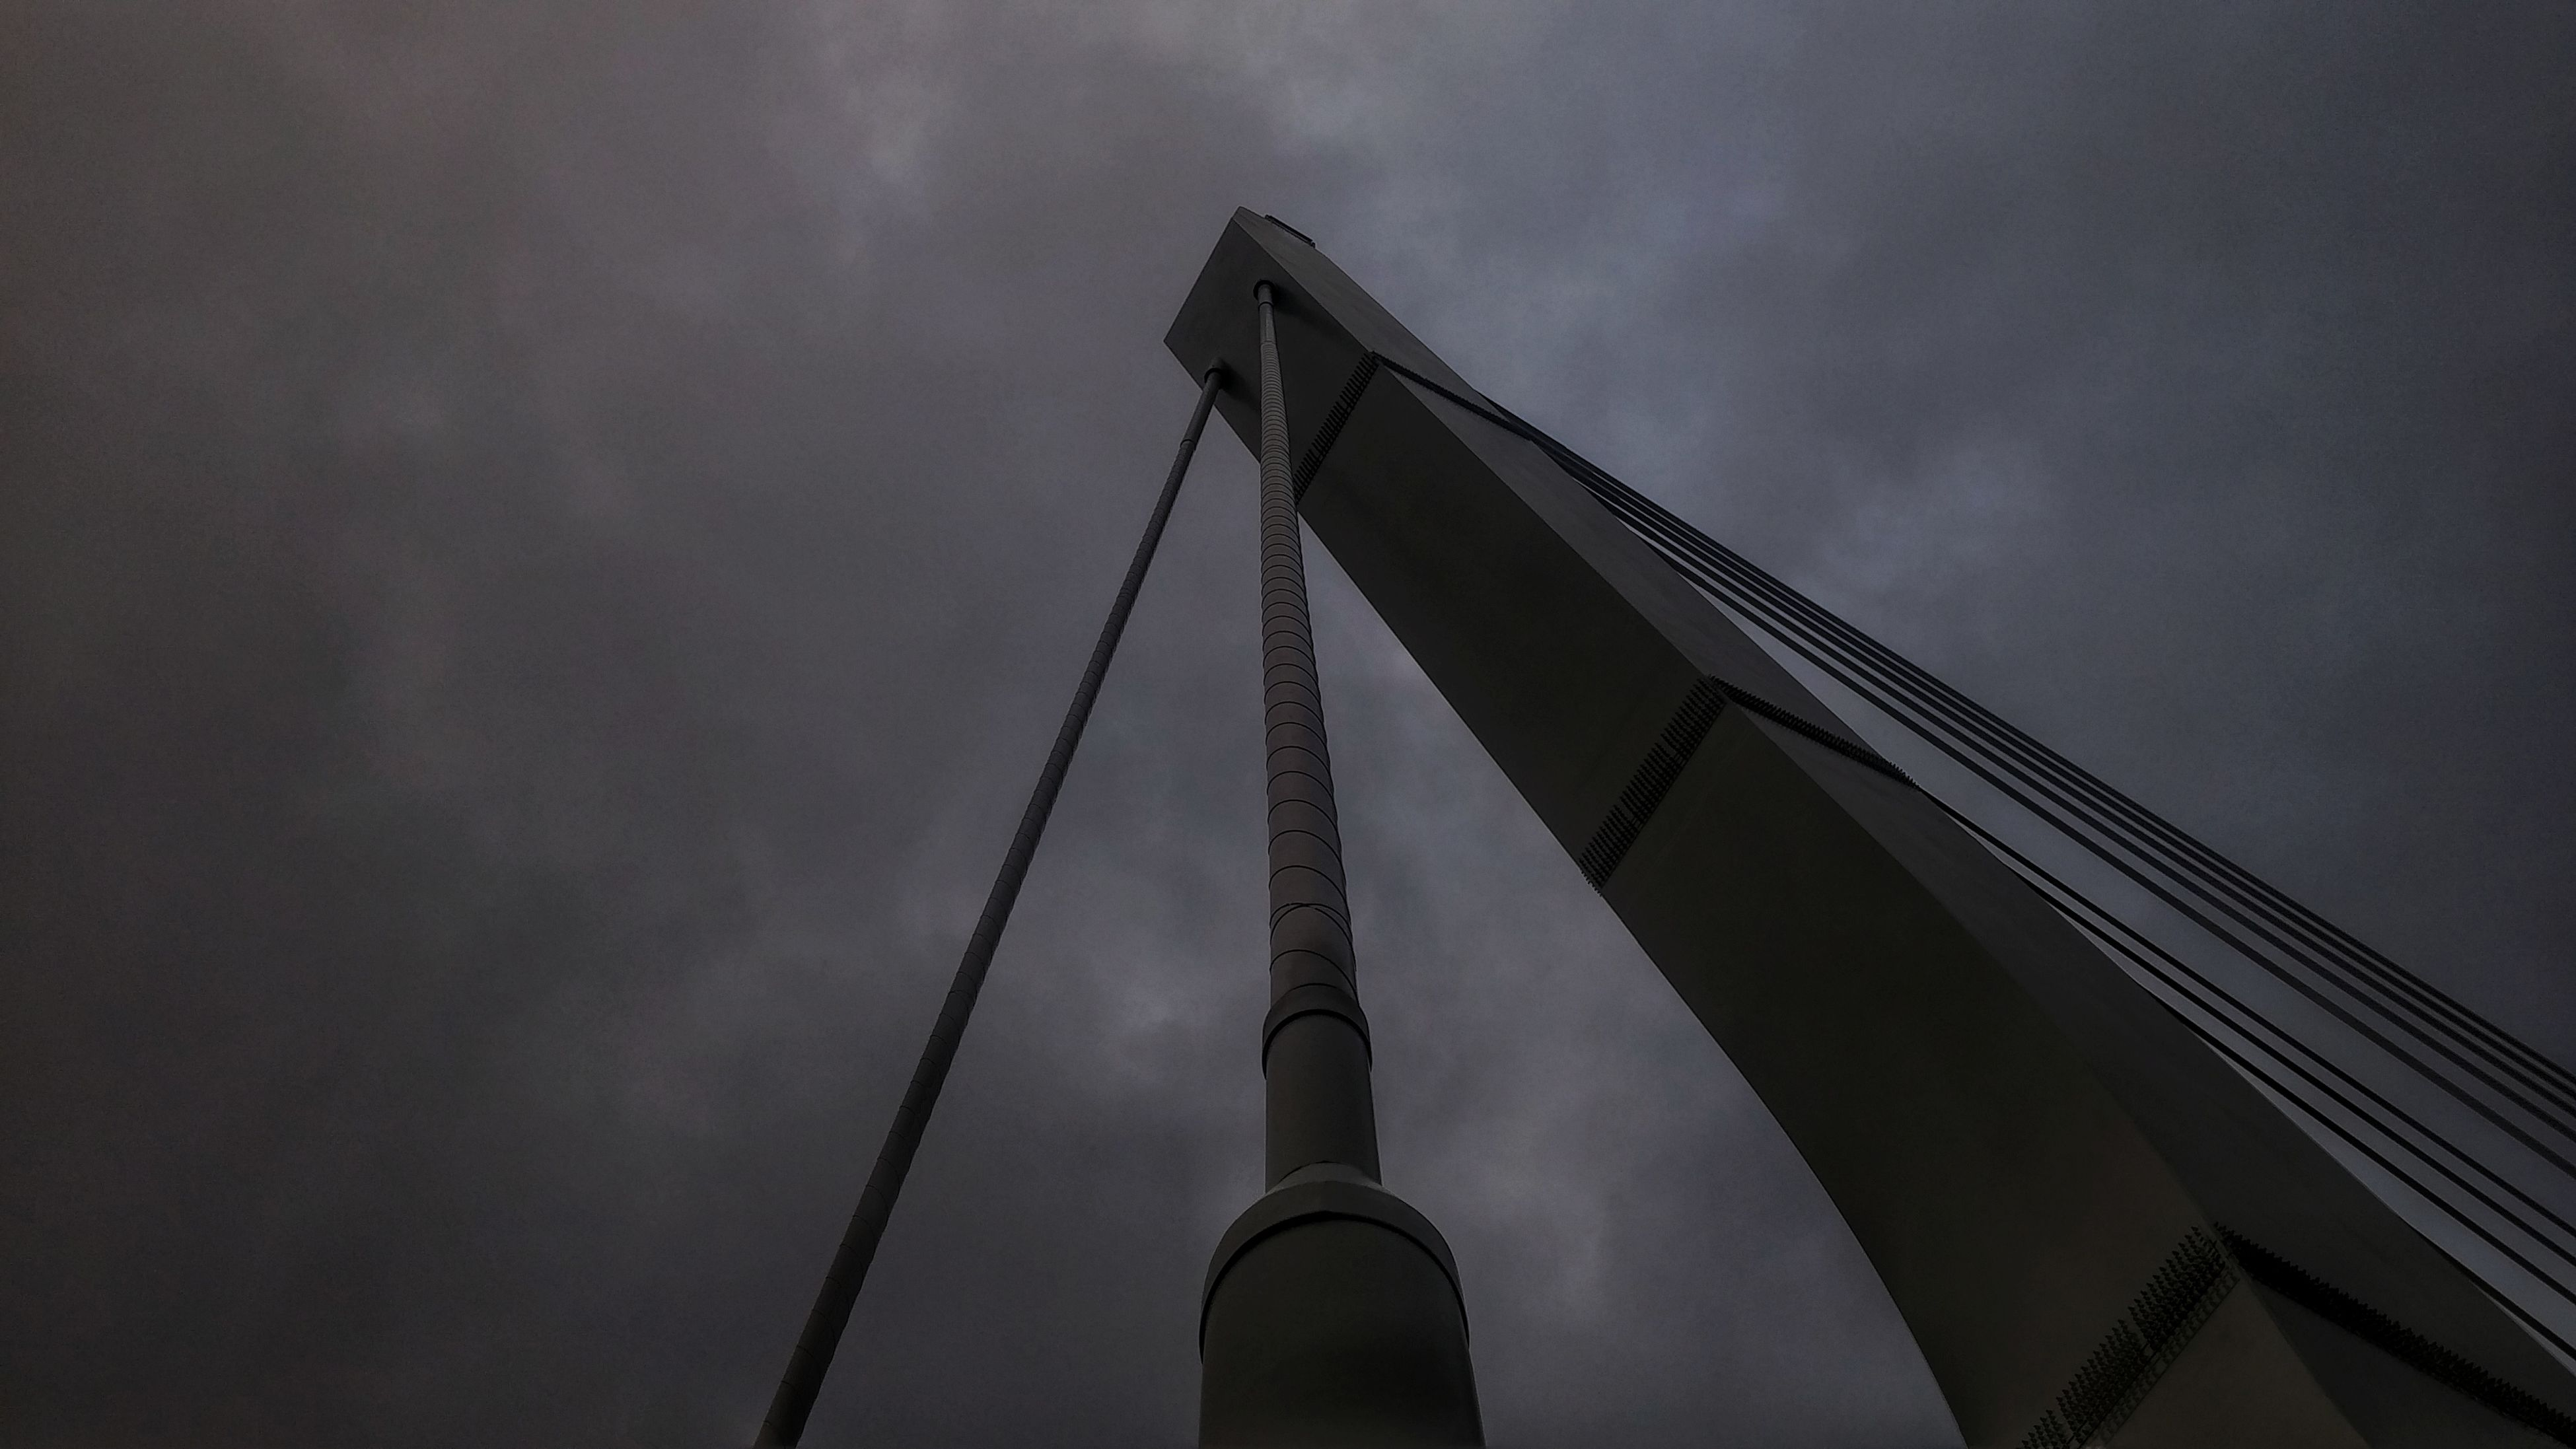 sky, low angle view, built structure, cloud - sky, outdoors, architecture, no people, day